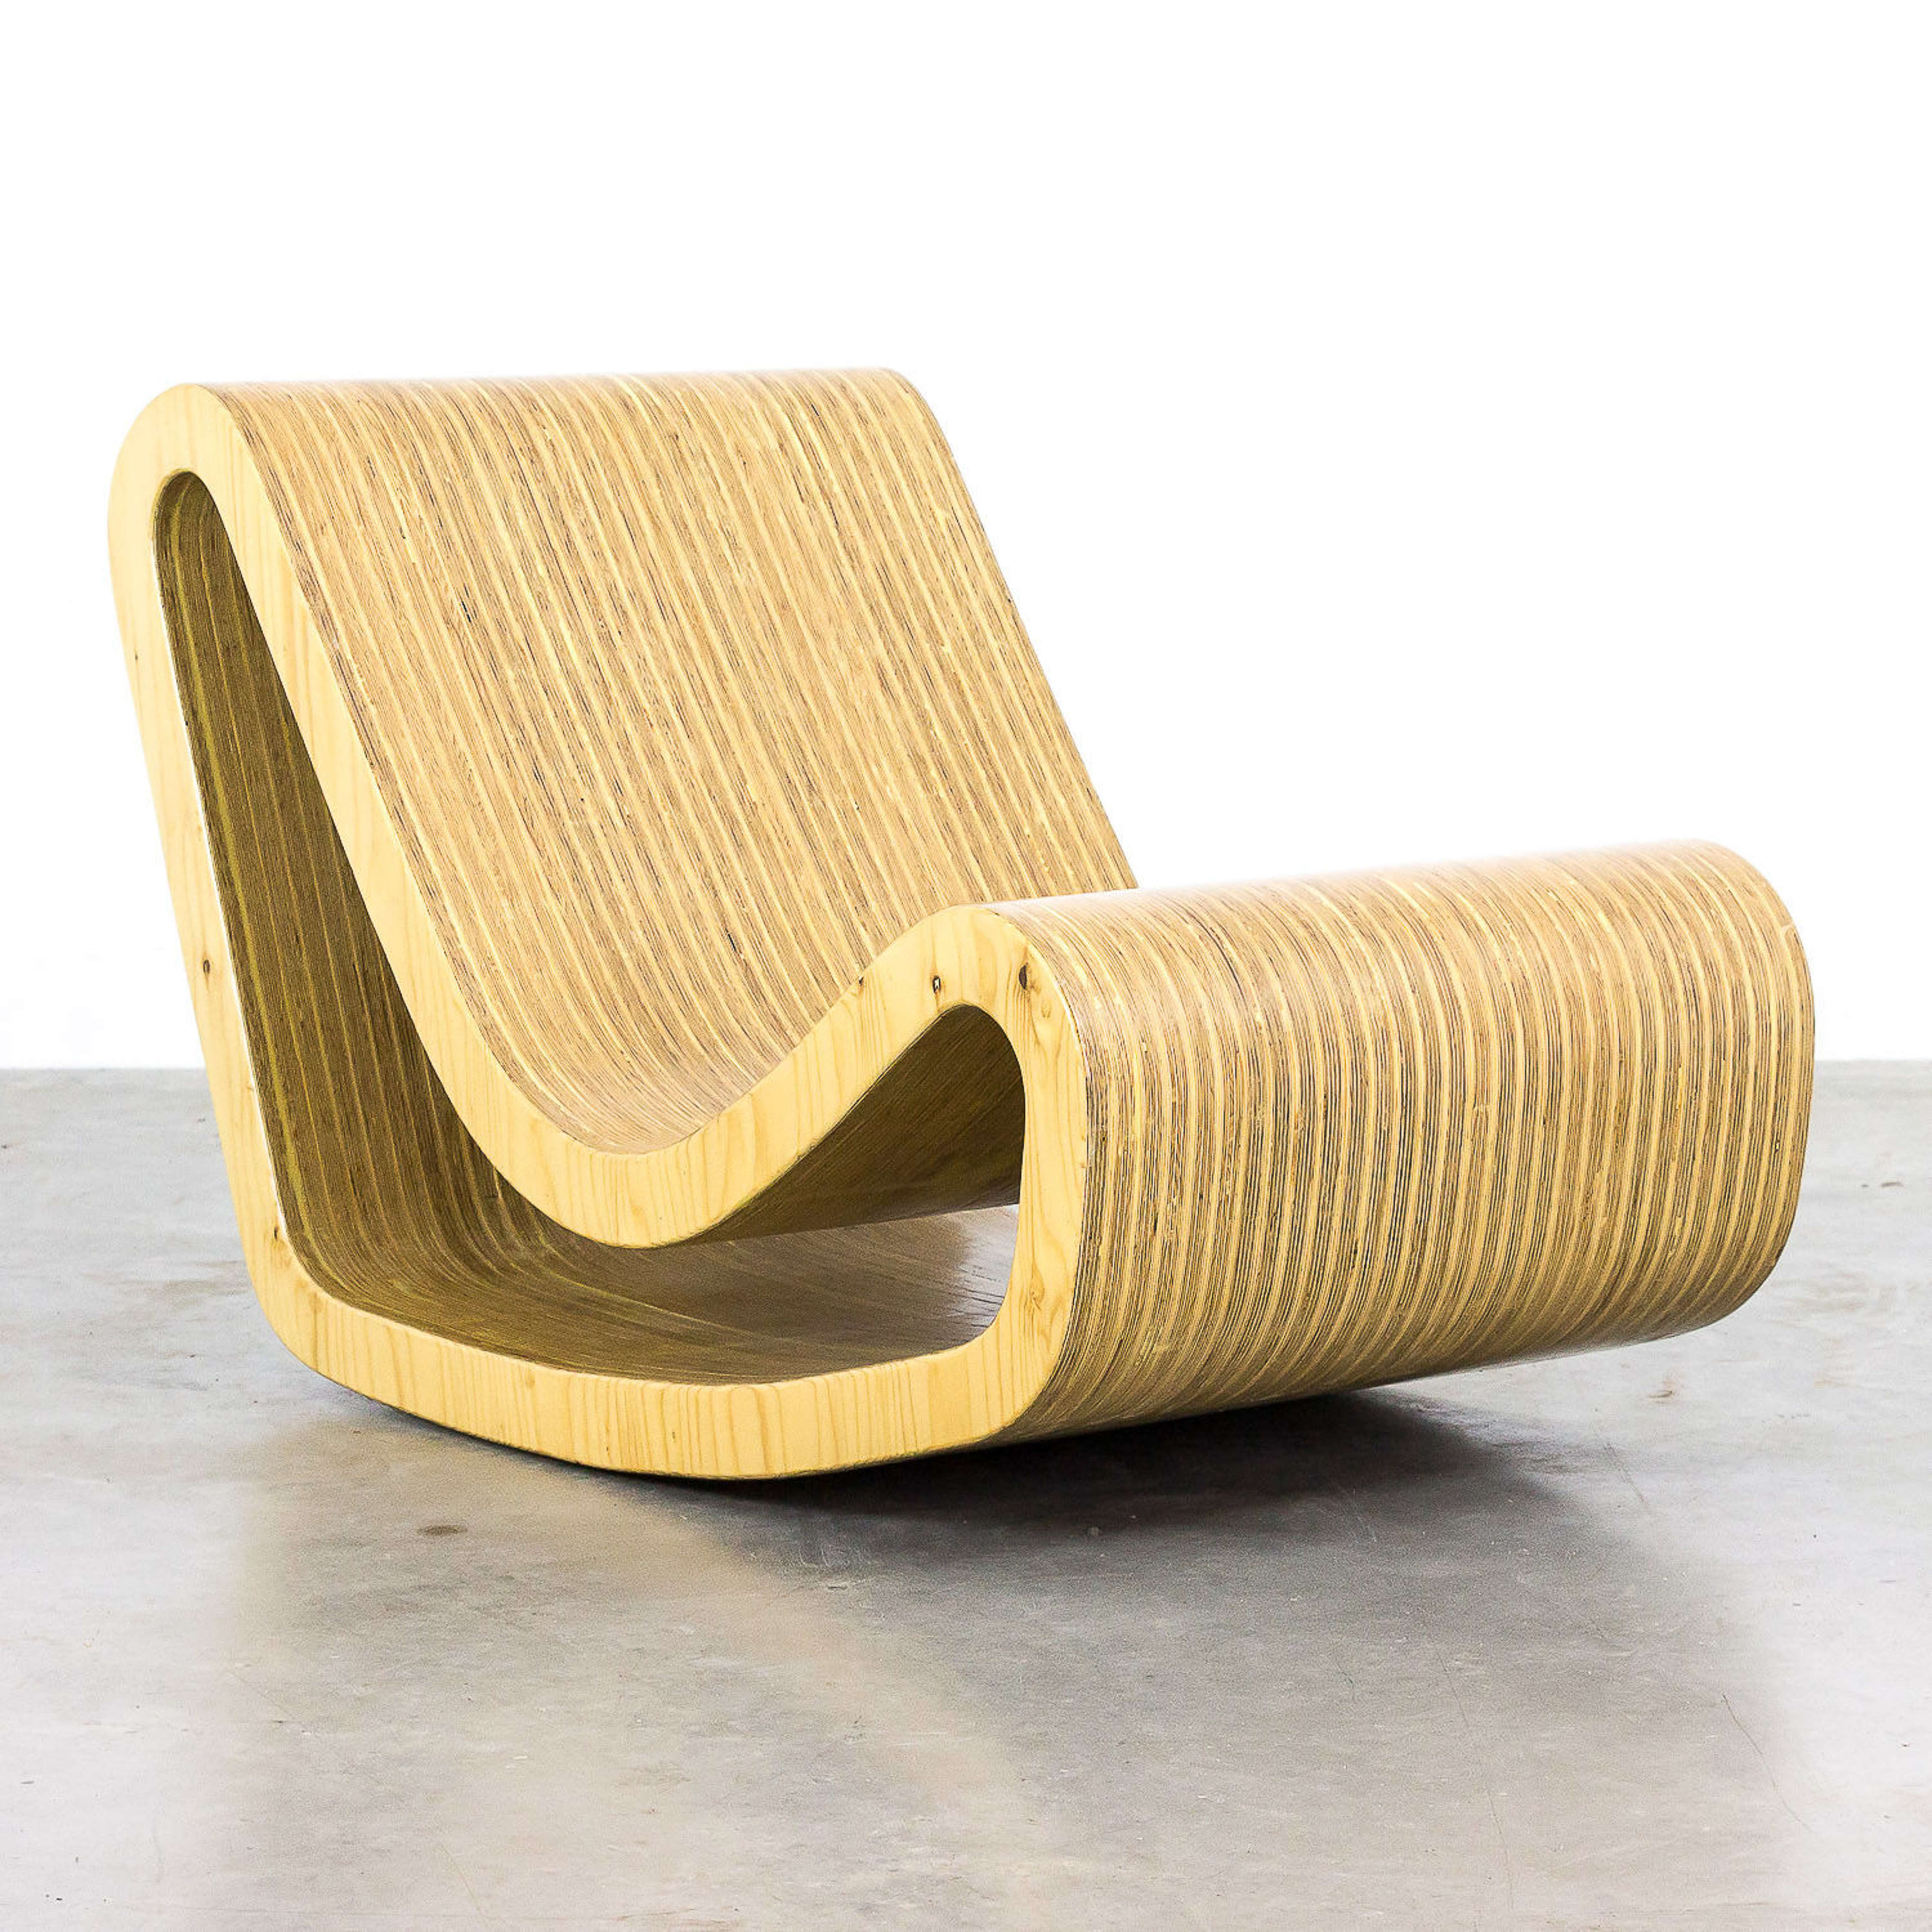 Wooden Loop Chair inspired By Willy Guhl